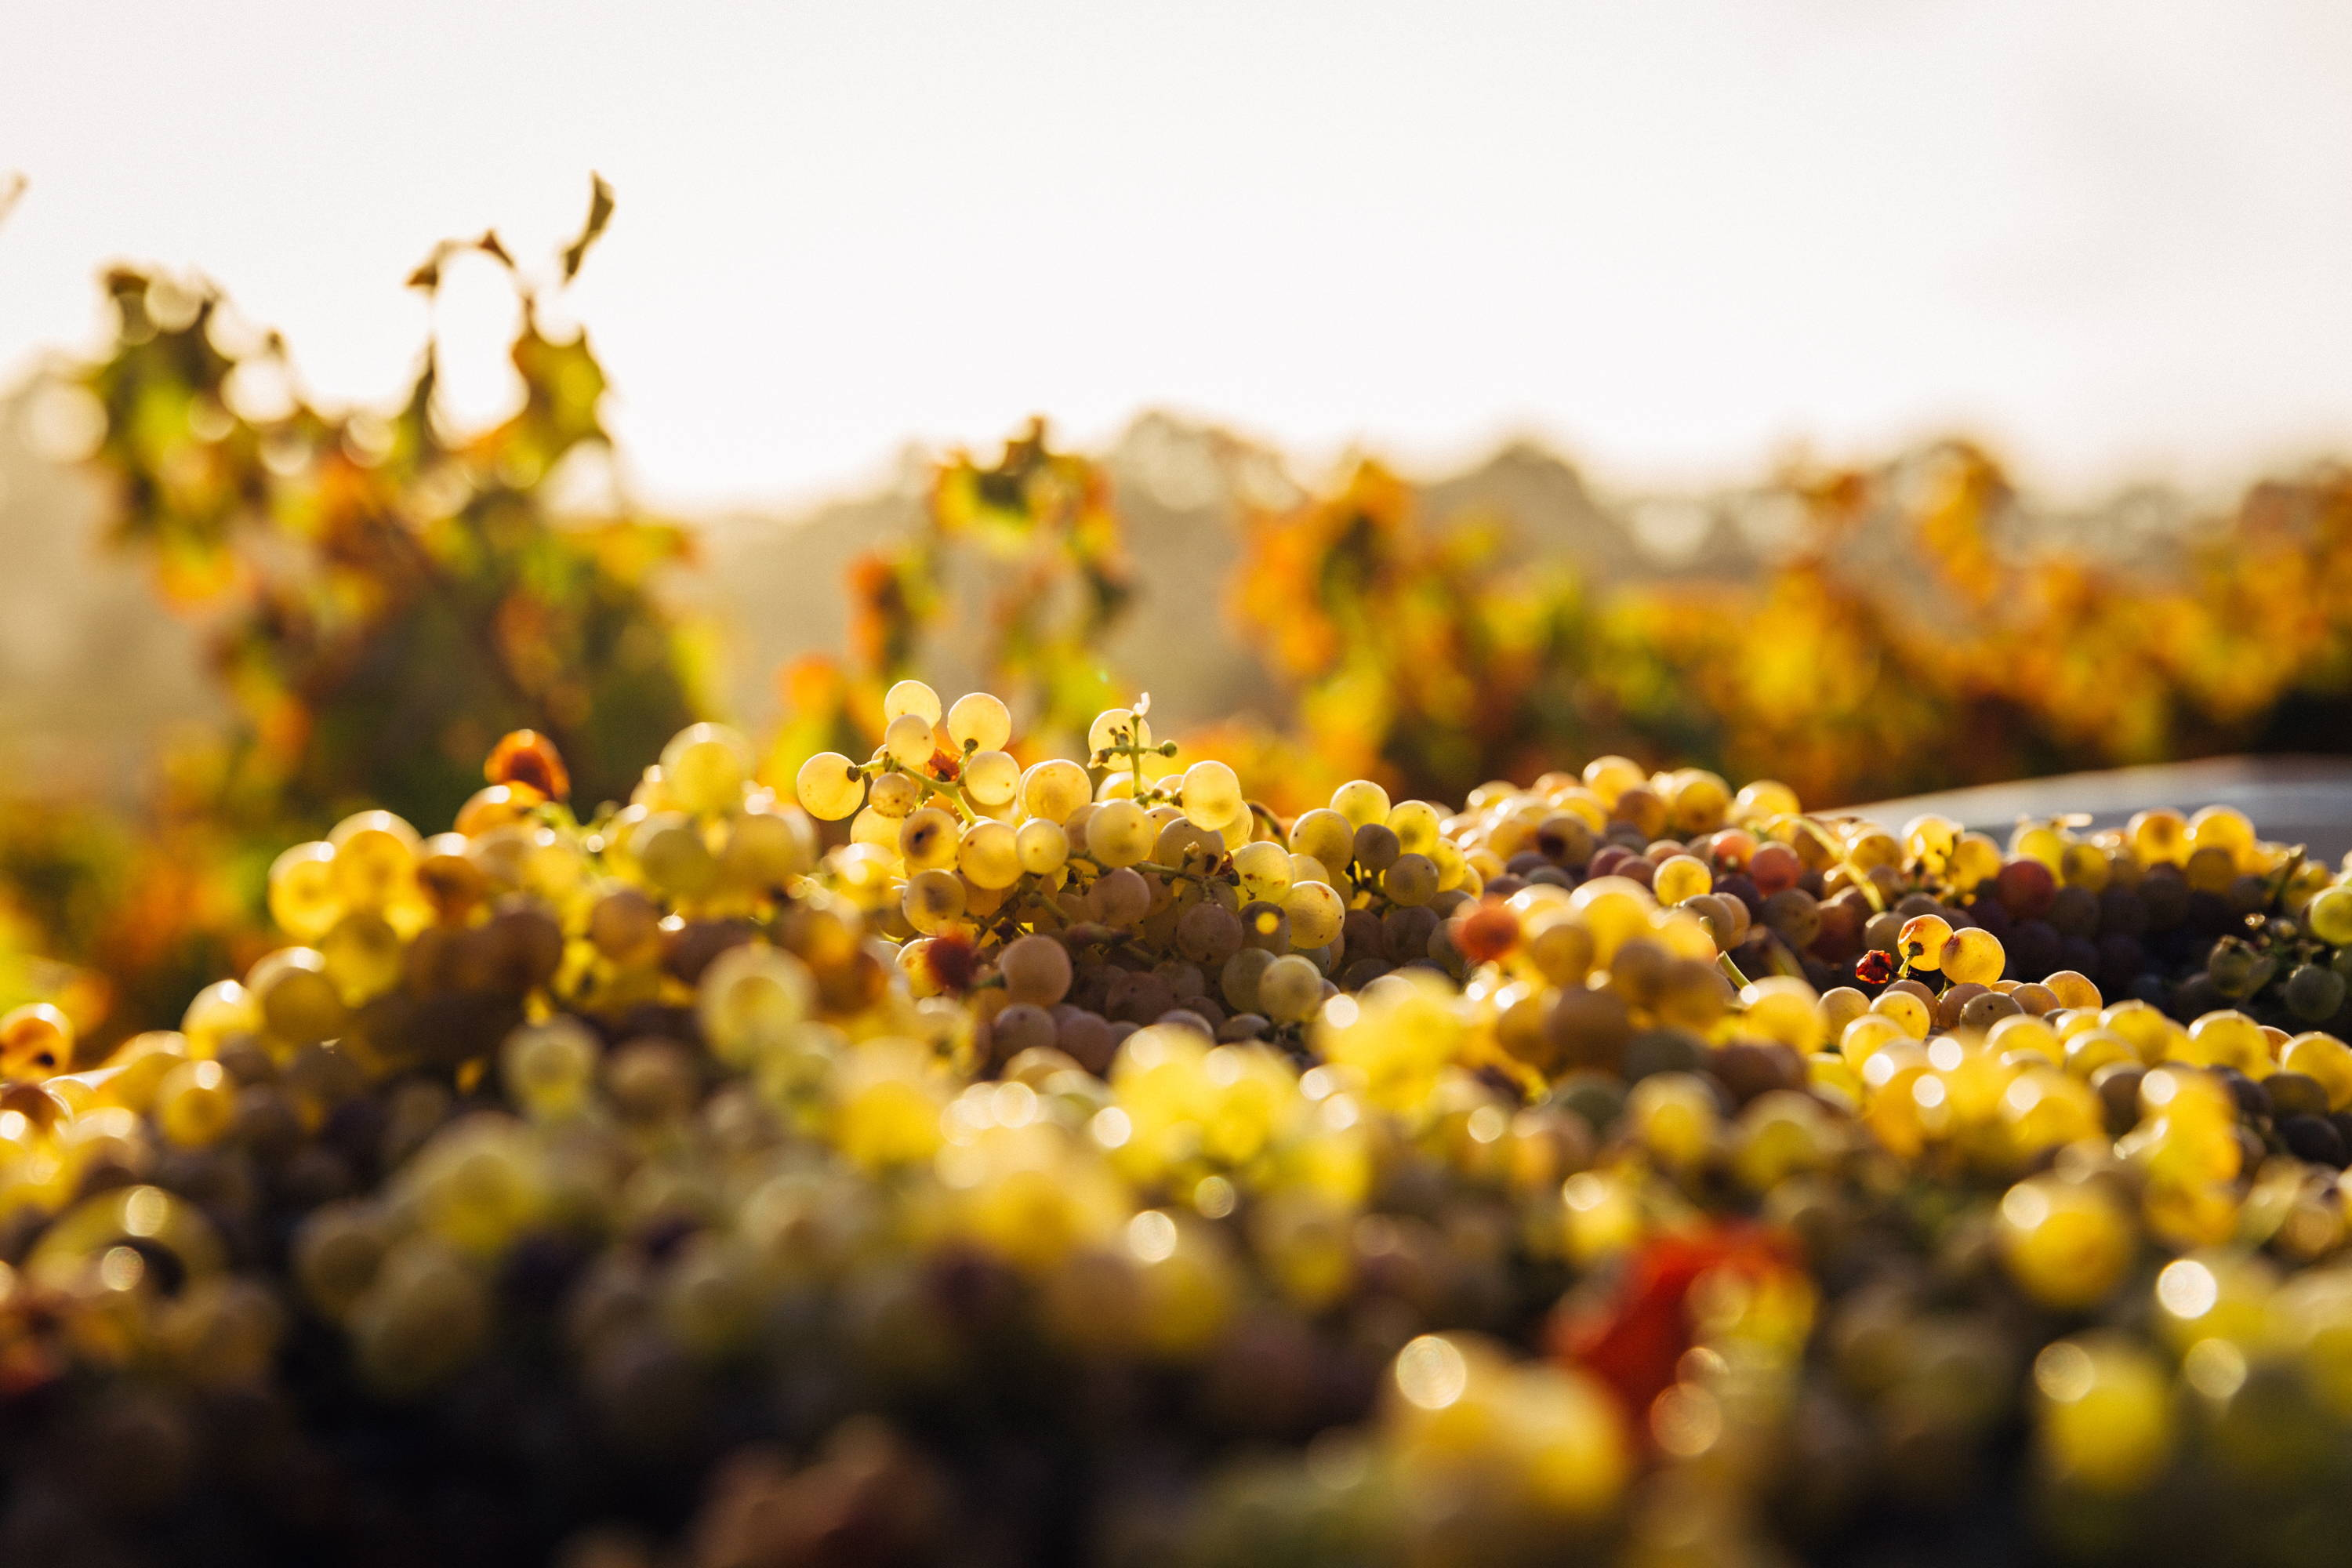 An overview of red and white grapes becoming fainter in the distance.